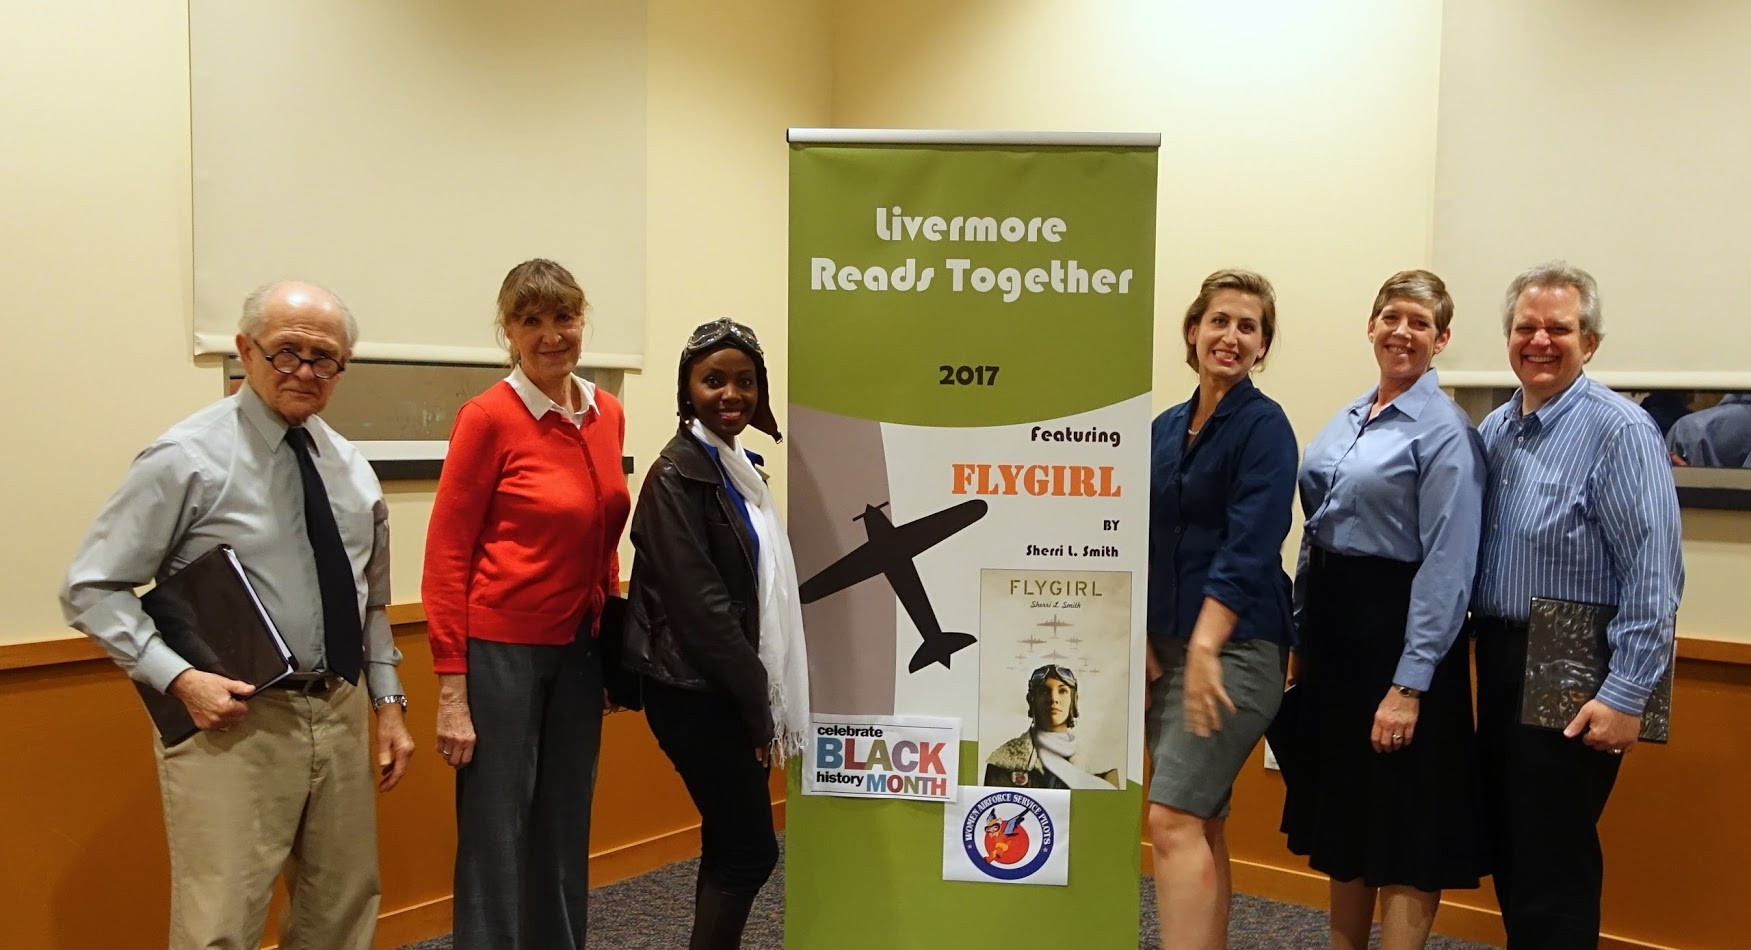 Livermore Reads Flygirl Reading